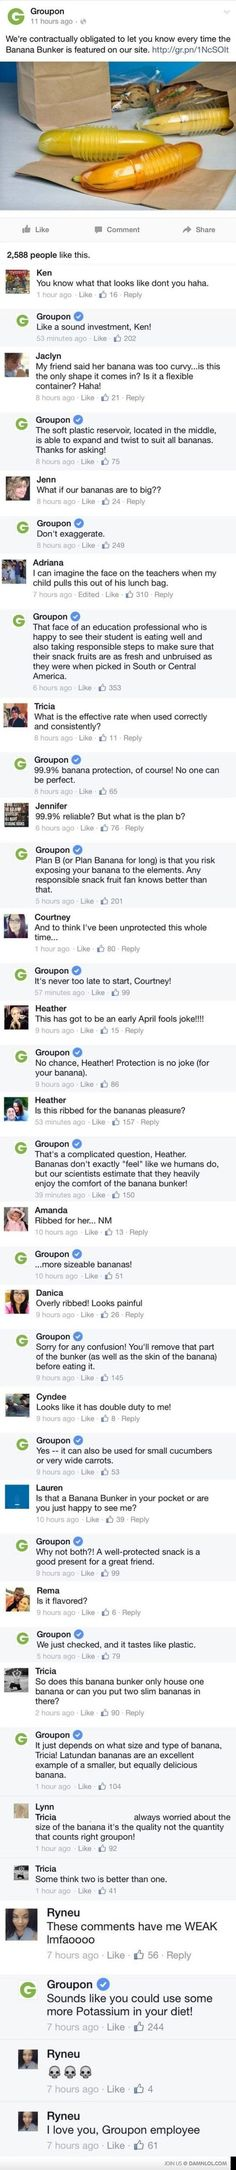 This is hysterical. I hope the social media manager for Groupon got a raise after this. Or maybe a banana bunker. XD